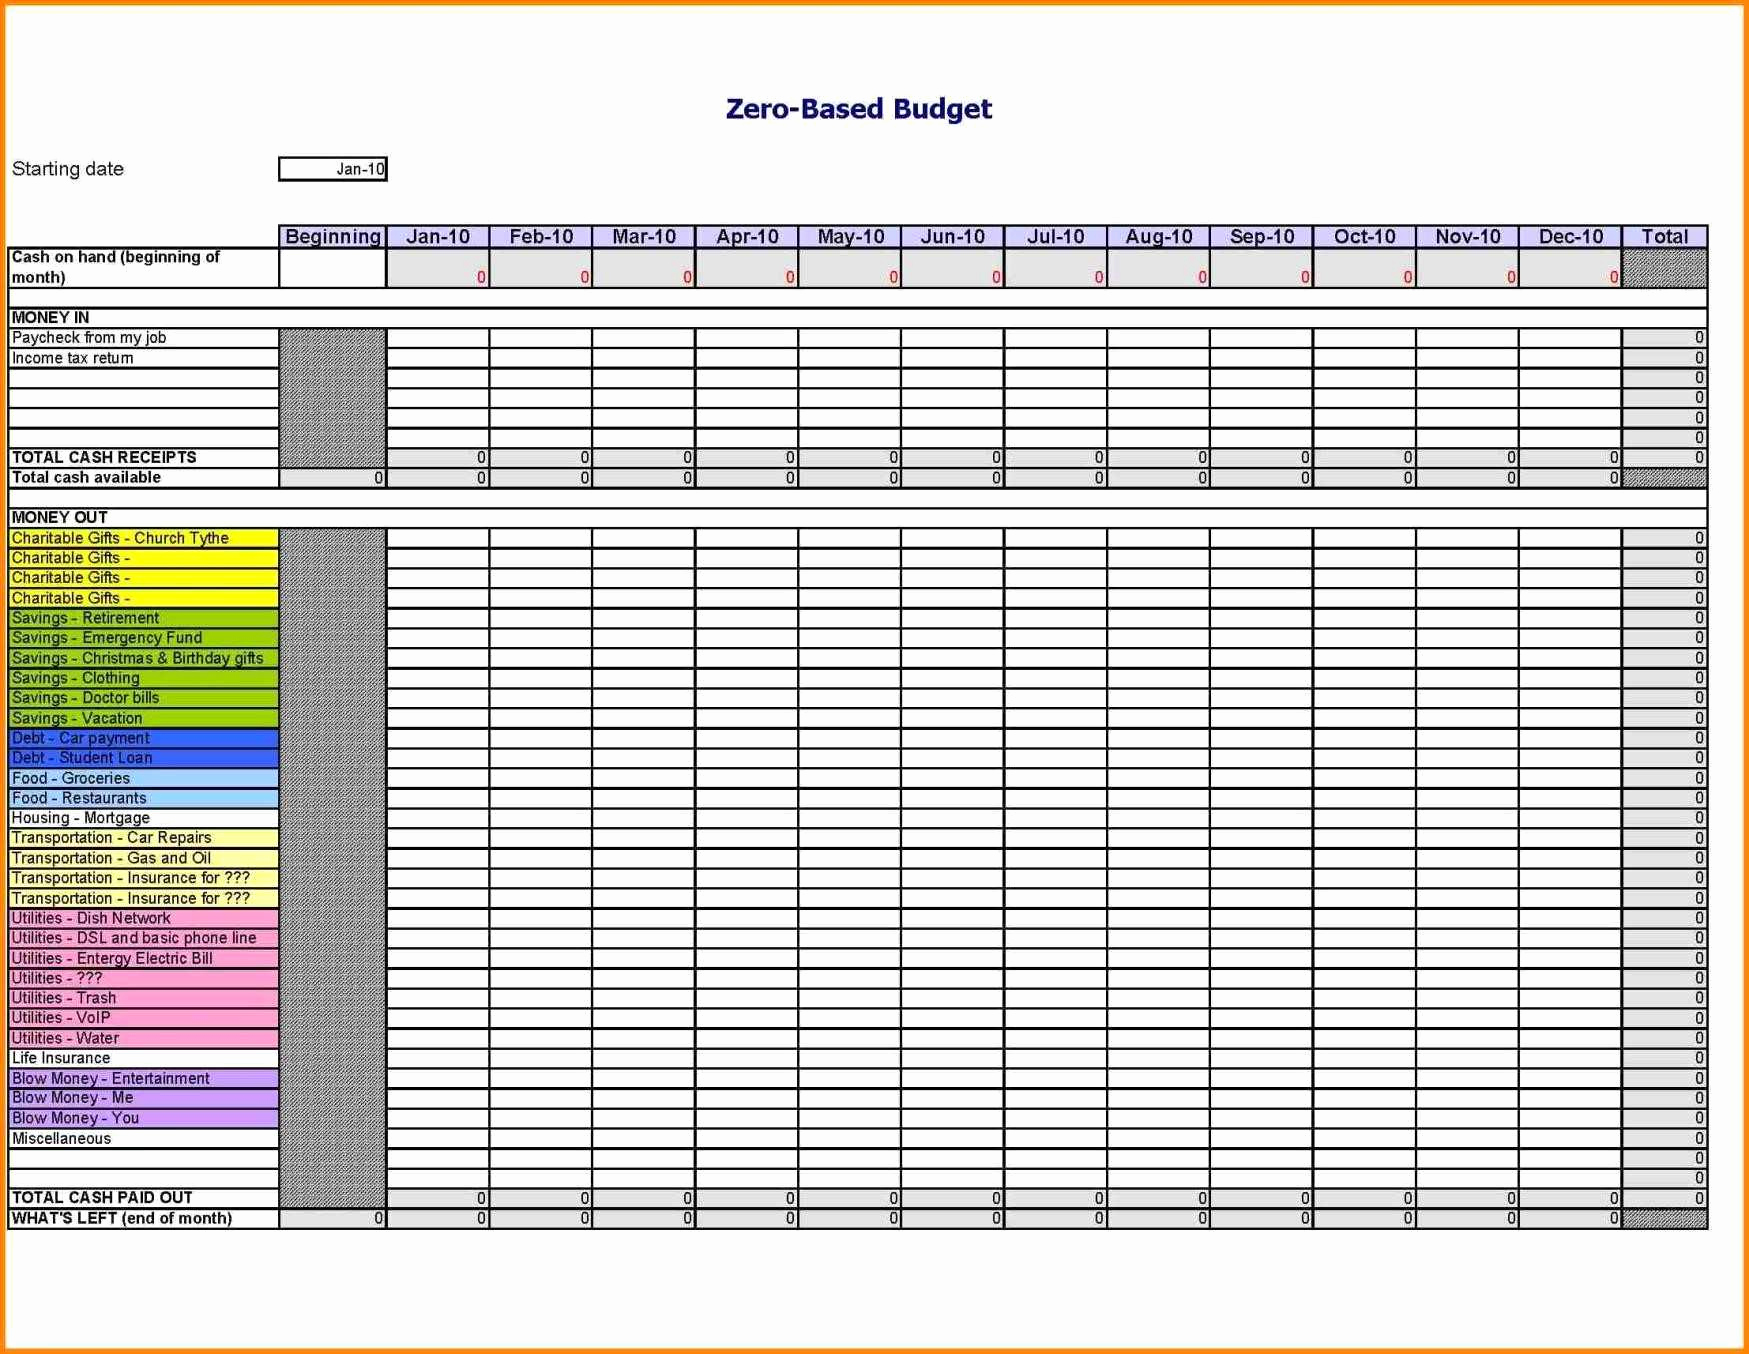 Budget Template Dave Ramsey Inspirational Zero Based Bud Spreadsheet Dave Ramsey